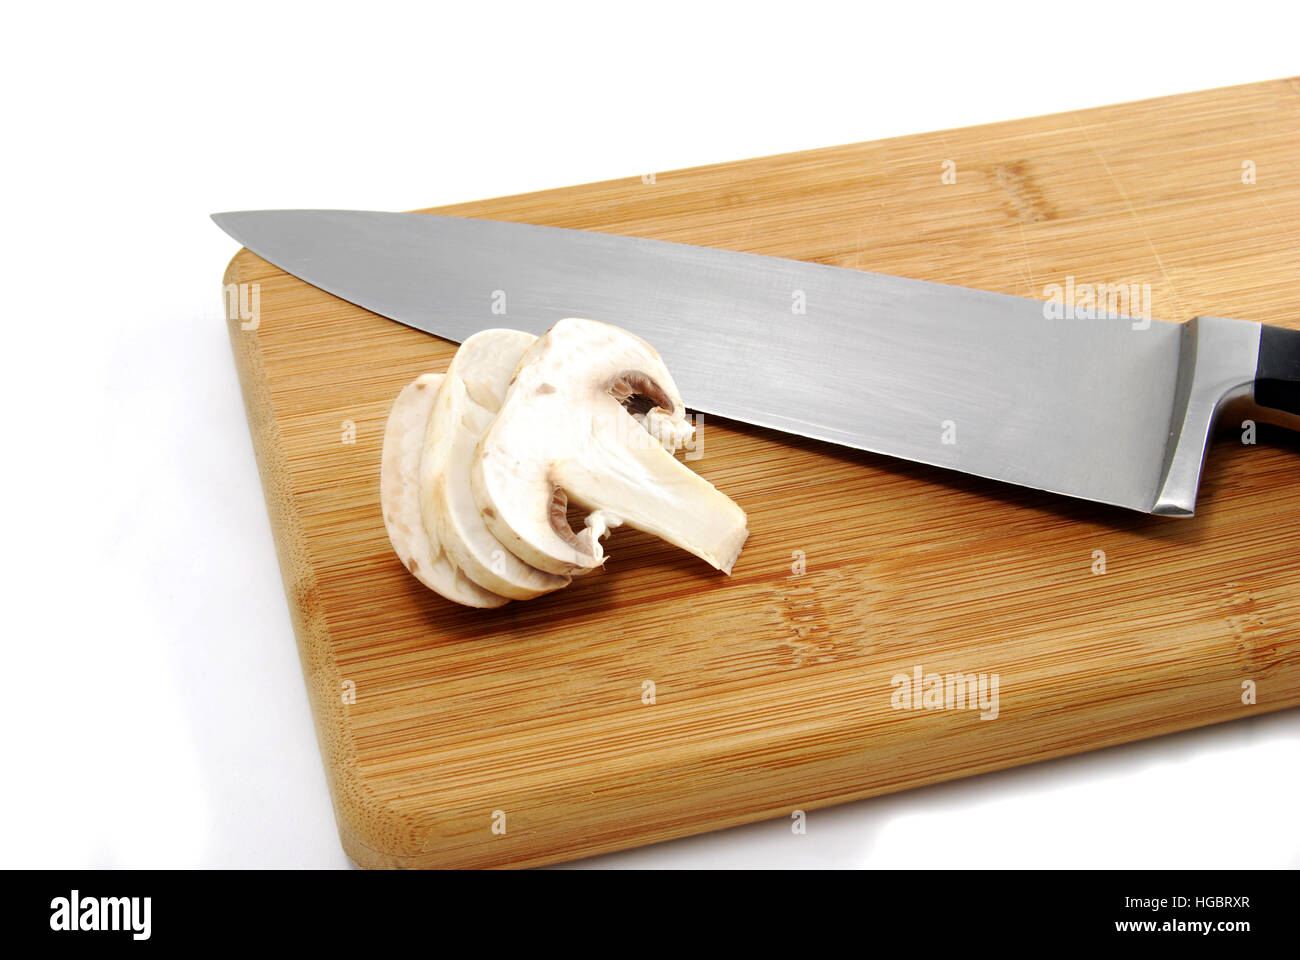 Preparing dinner by slicing mushrooms on cutting board. - Stock Image